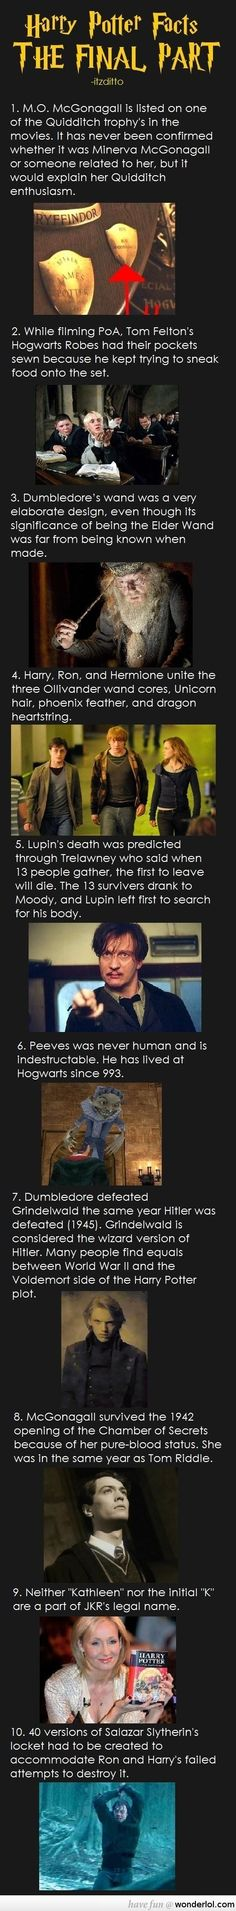 did you know harry potter facts | Facts You Didn't Know About Harry Potter /Part 1/ - Wonder LOL!